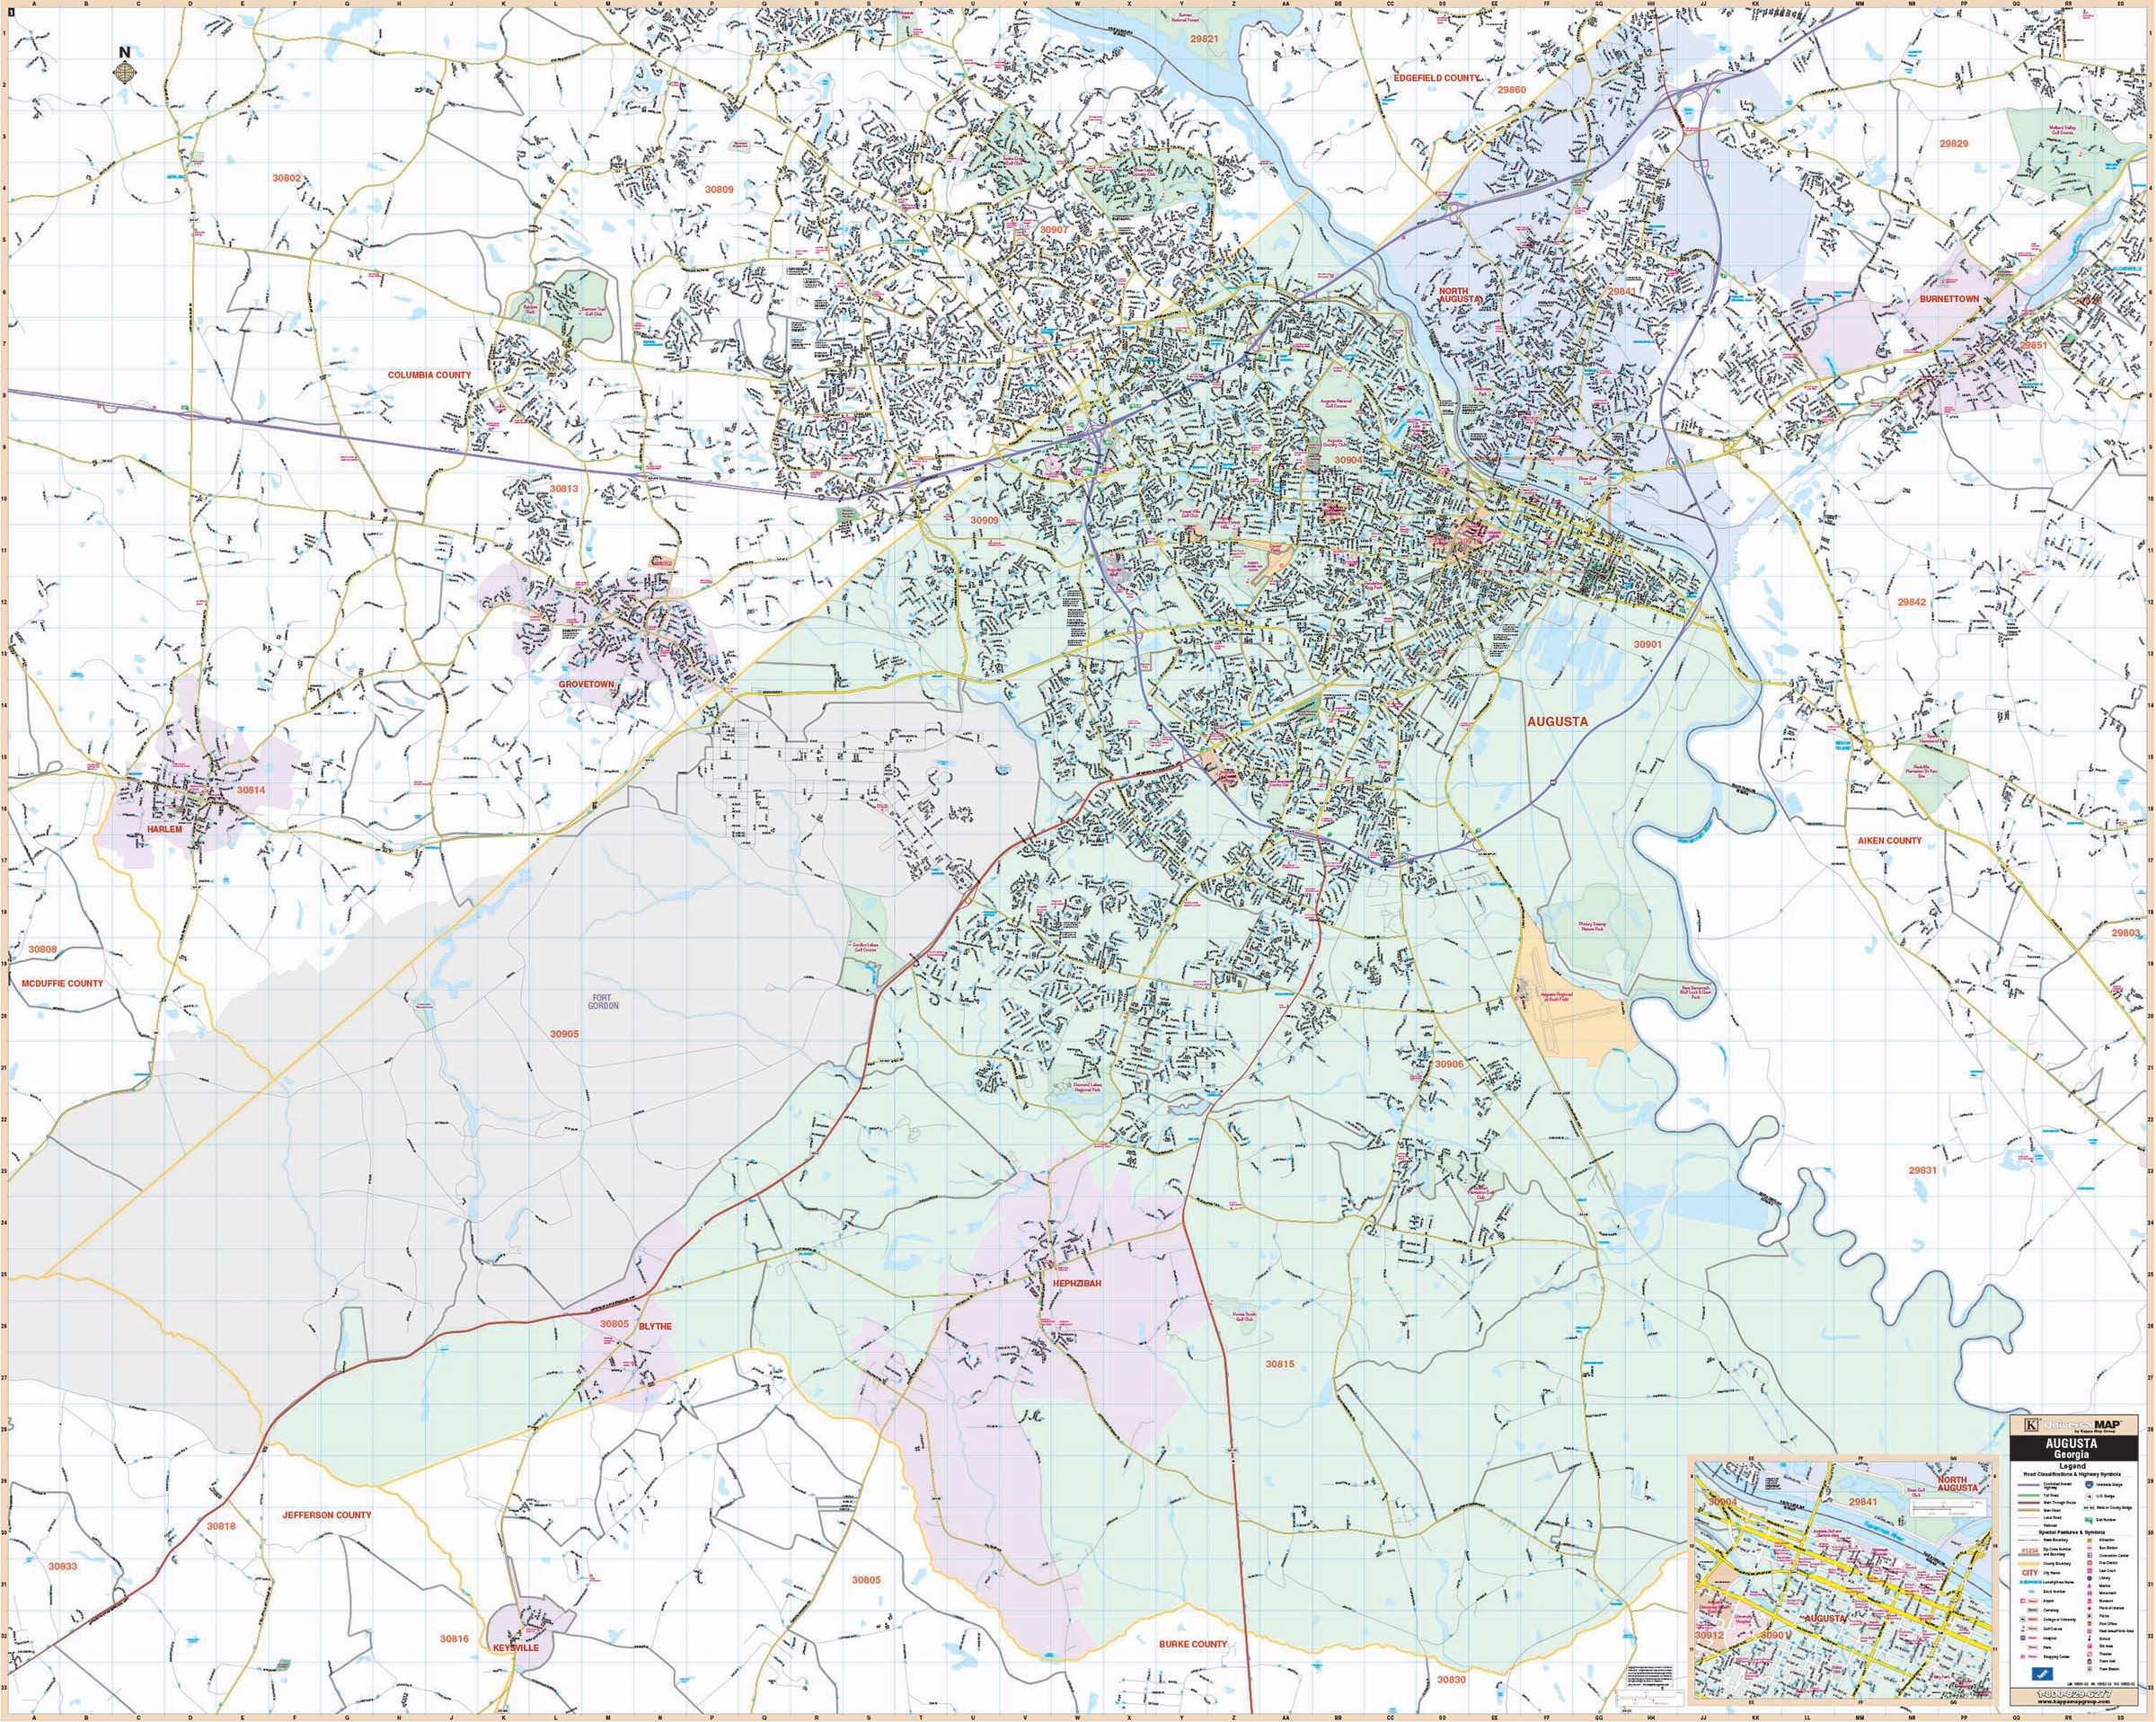 Augusta, GA Wall Map – KAPPA MAP GROUP on venus map, pekin map, normal map, inuyasha map, marshall county map, sprite map, globe map, muskegon county boundary map, inche in continental us map, guess map, river valley map, dwarf map, peoria map, adidas map, bugbear map, nike map, el paso map,